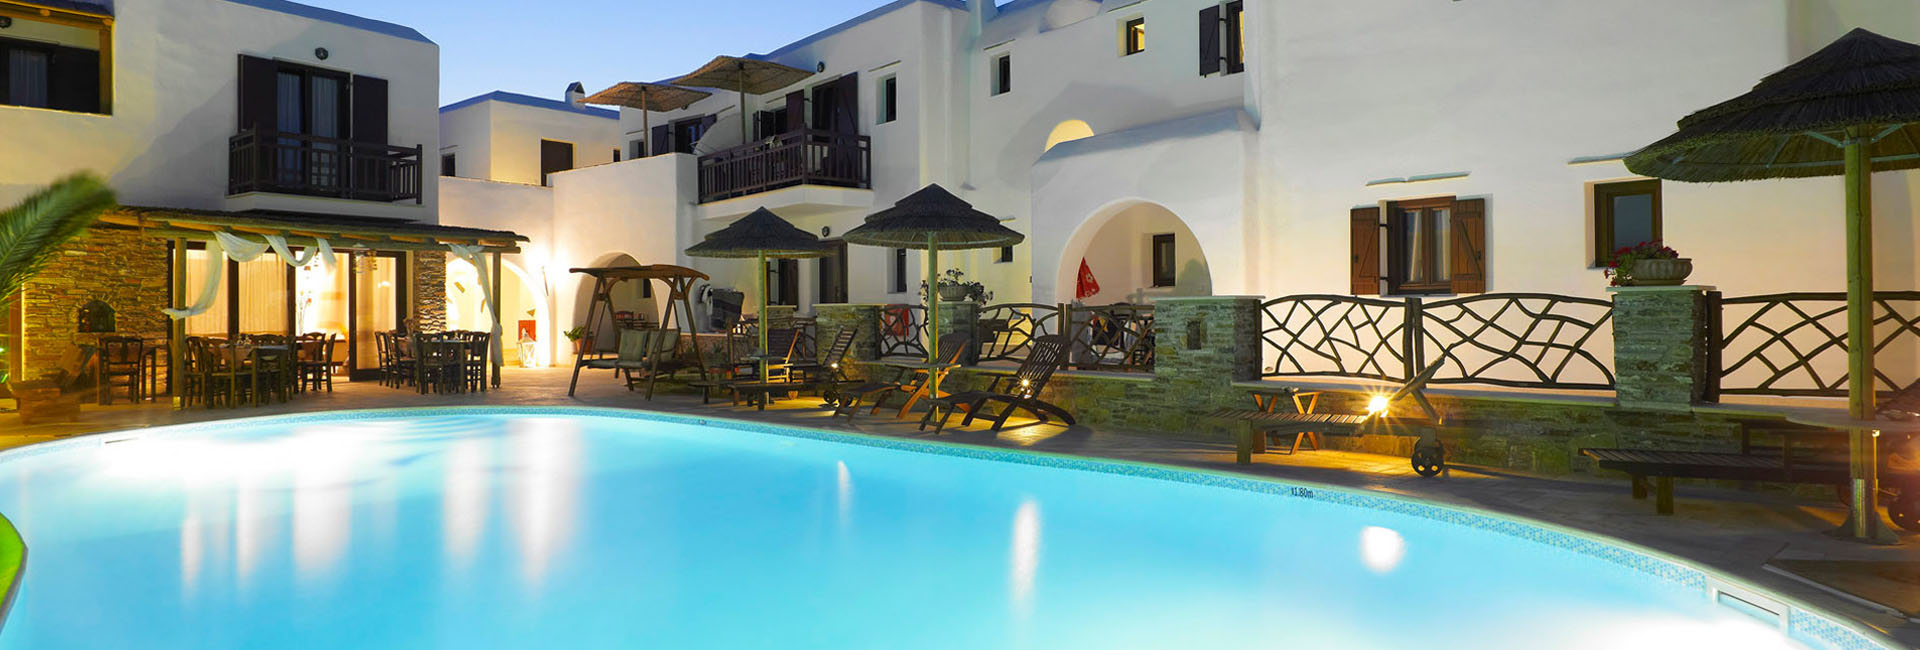 Hotel Anemomilos Naxos - swimming pool